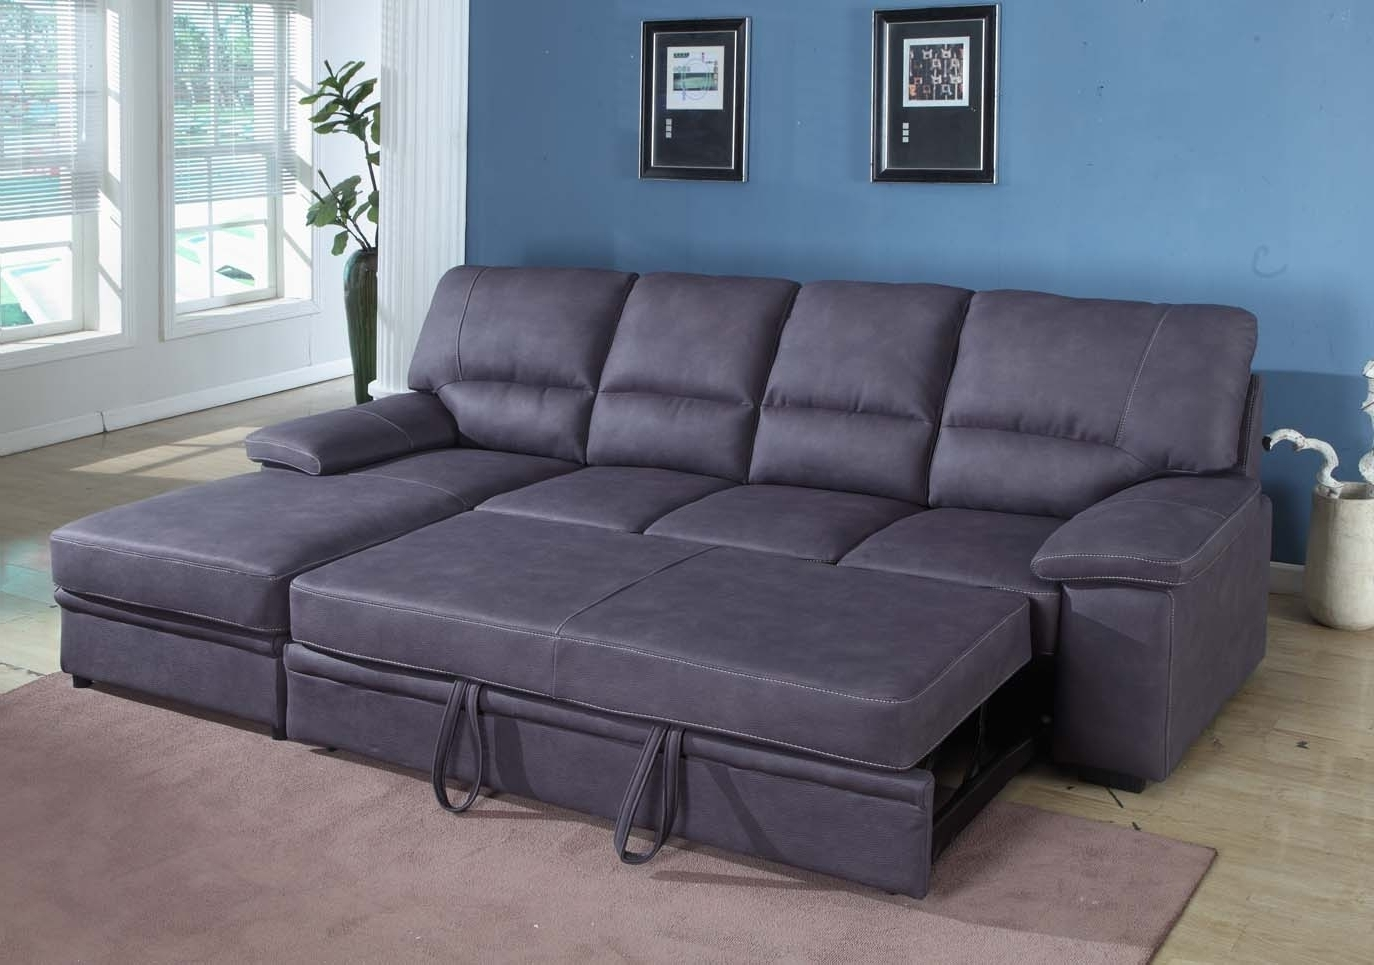 Sofas With Chaise And Ottoman With Regard To 2019 Ottoman Sleeper Sofa, Make A Chaise With Storage Ottoman Chaise (View 11 of 20)